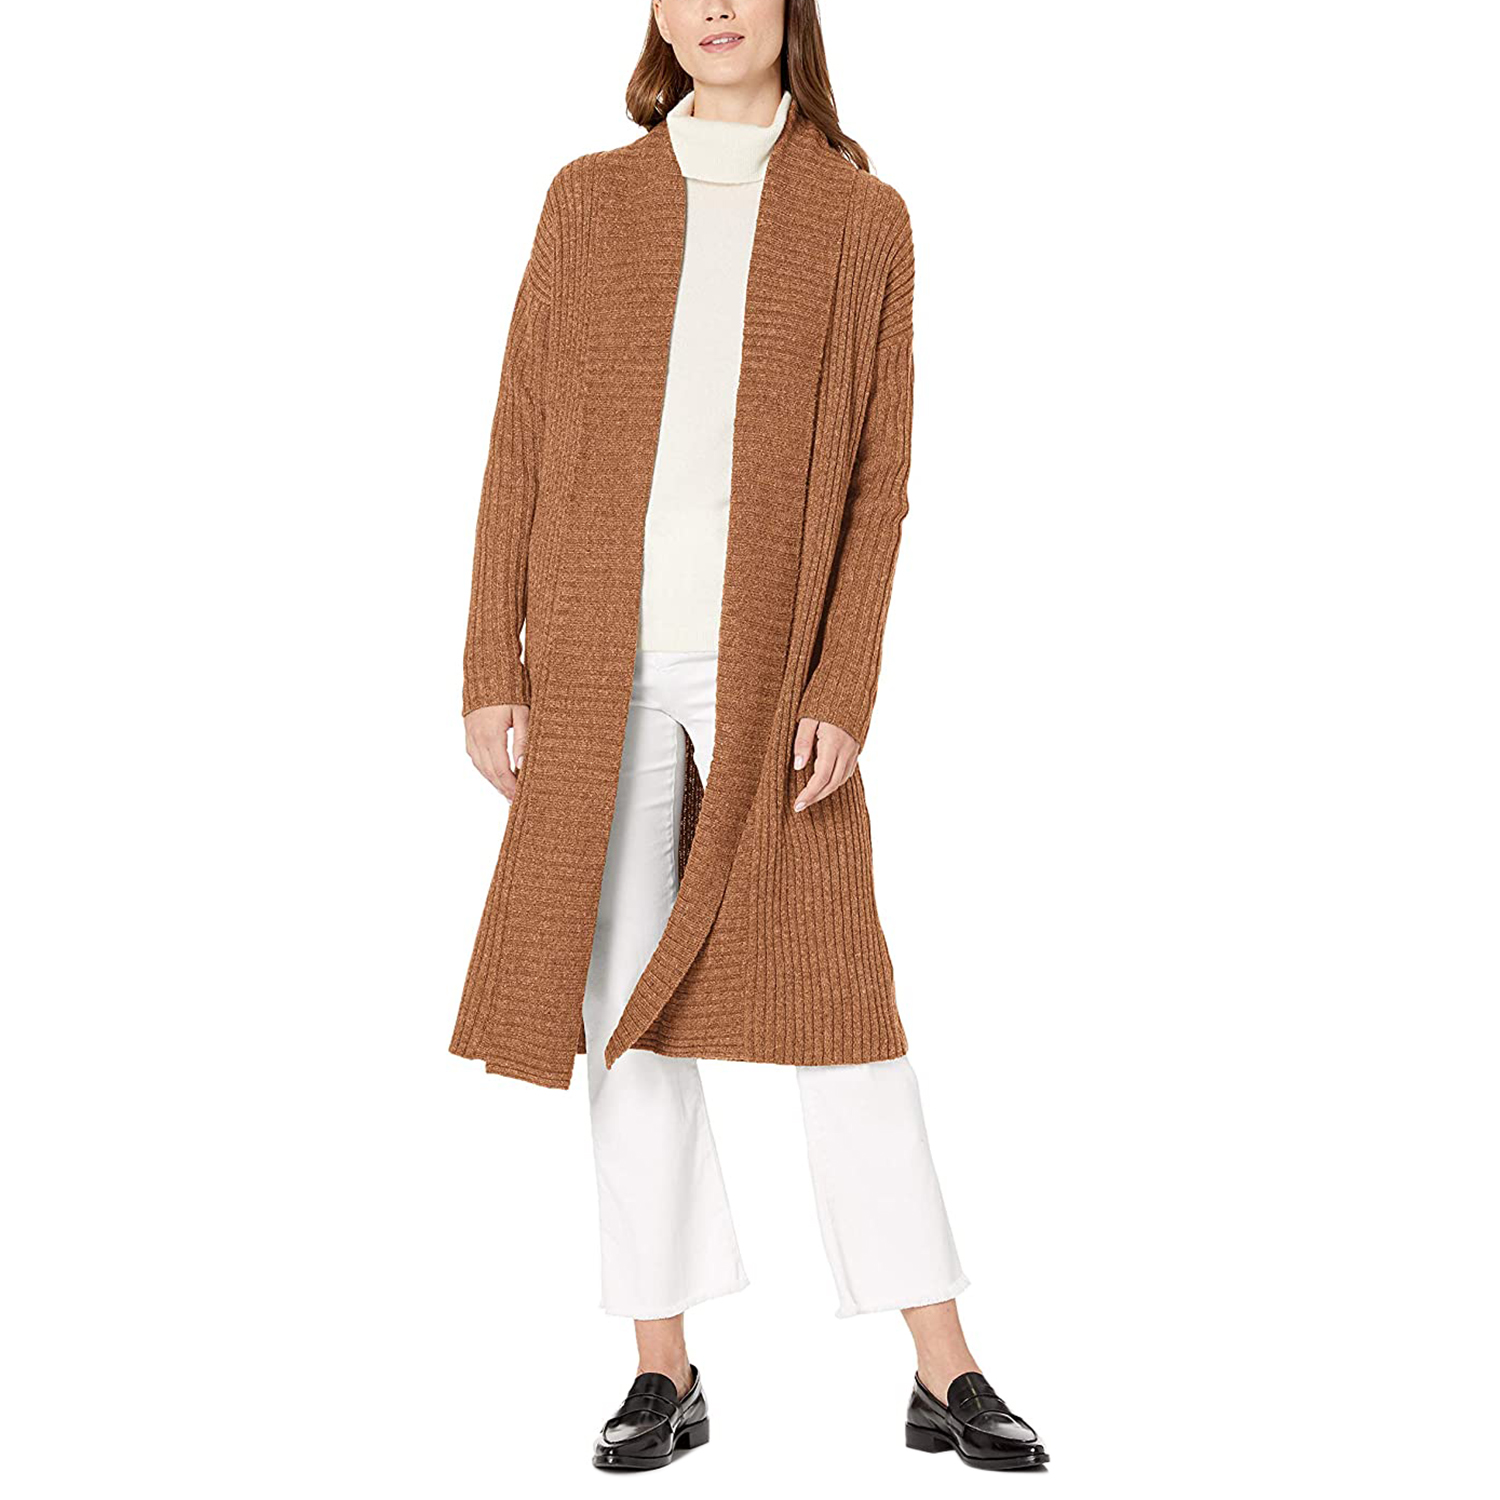 Amazon Essentials Women's Oversized Open Front Sweater Coat